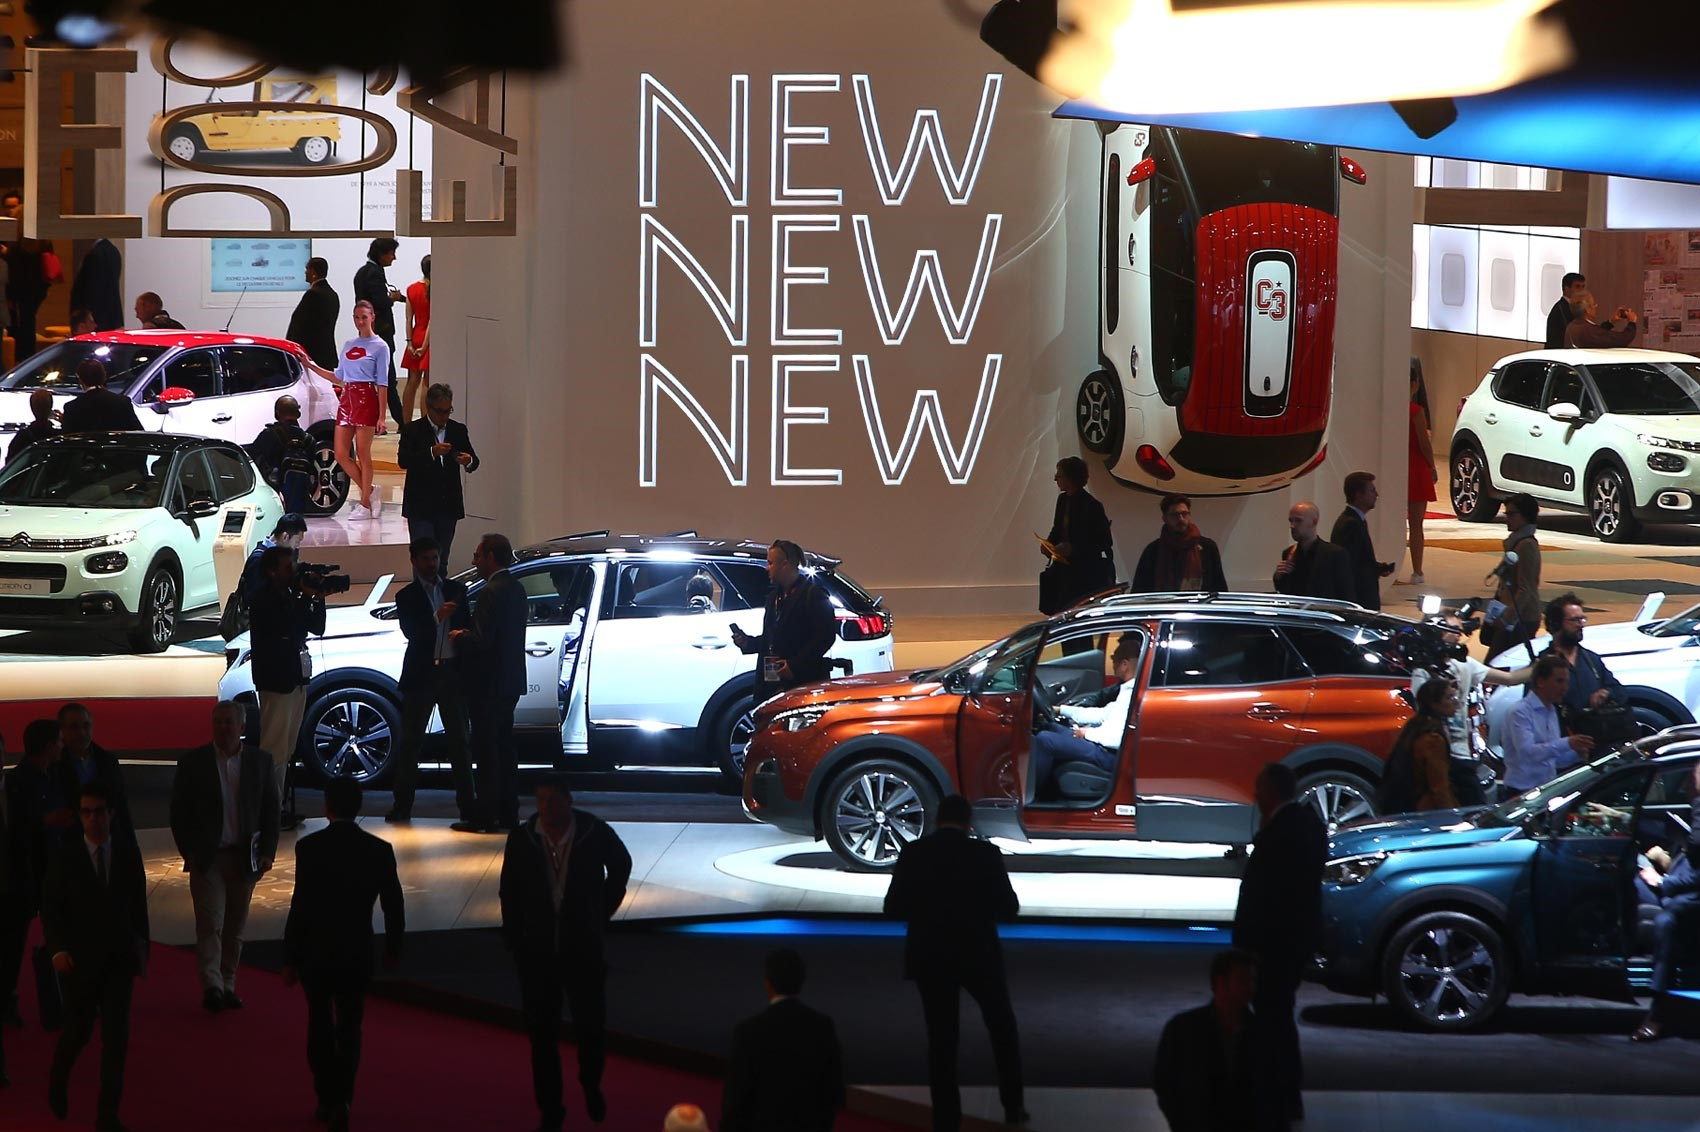 The Ten Key Cars Of The 2016 Paris Motor Show By Car Magazine